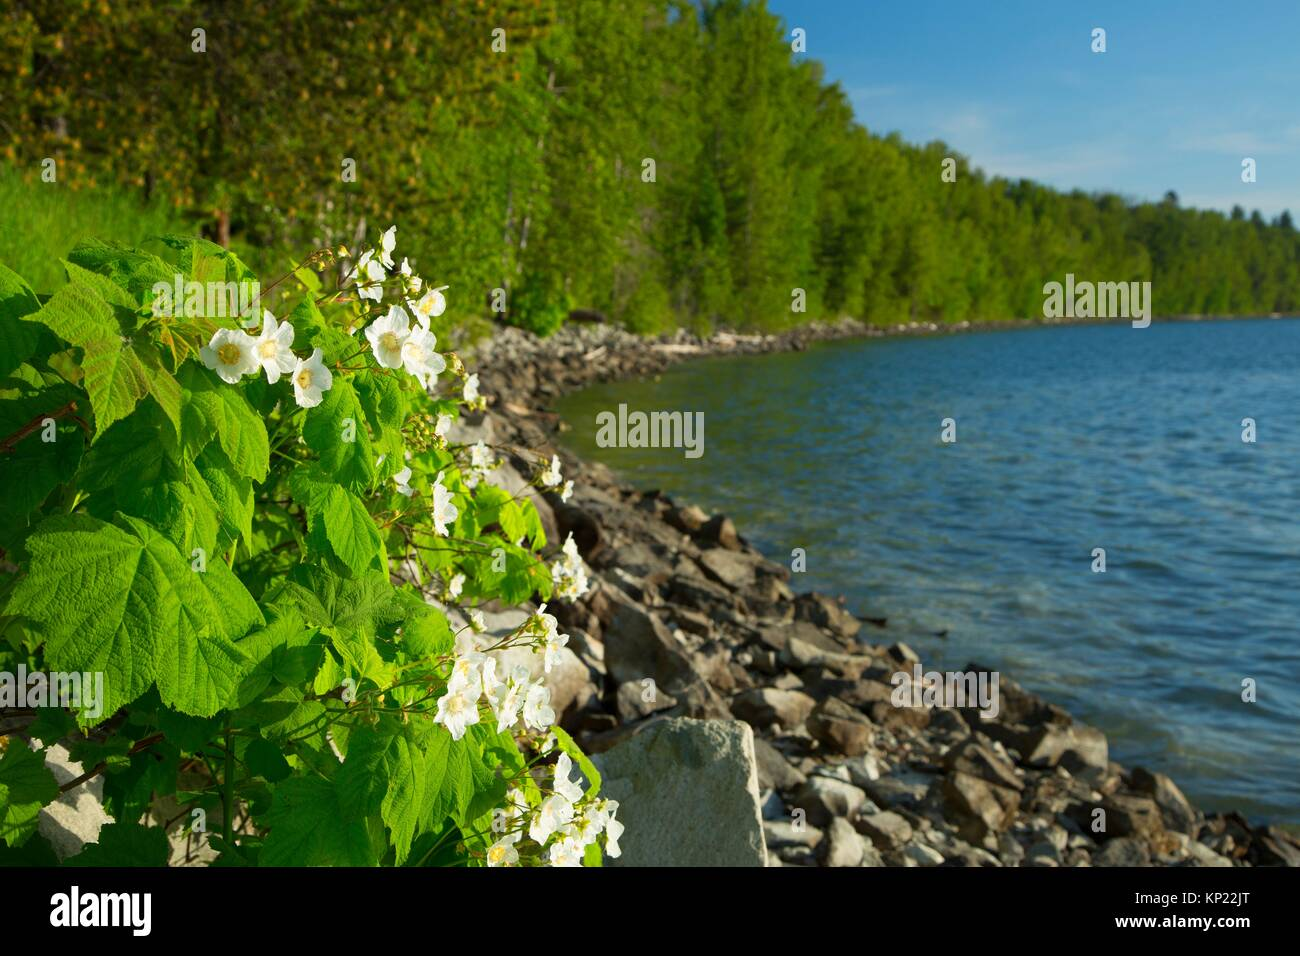 Lake Pend Oreille with thimbleberry bloom from Pend dâ.Oreille Bay Trail, Sandpoint, Idaho. - Stock Image